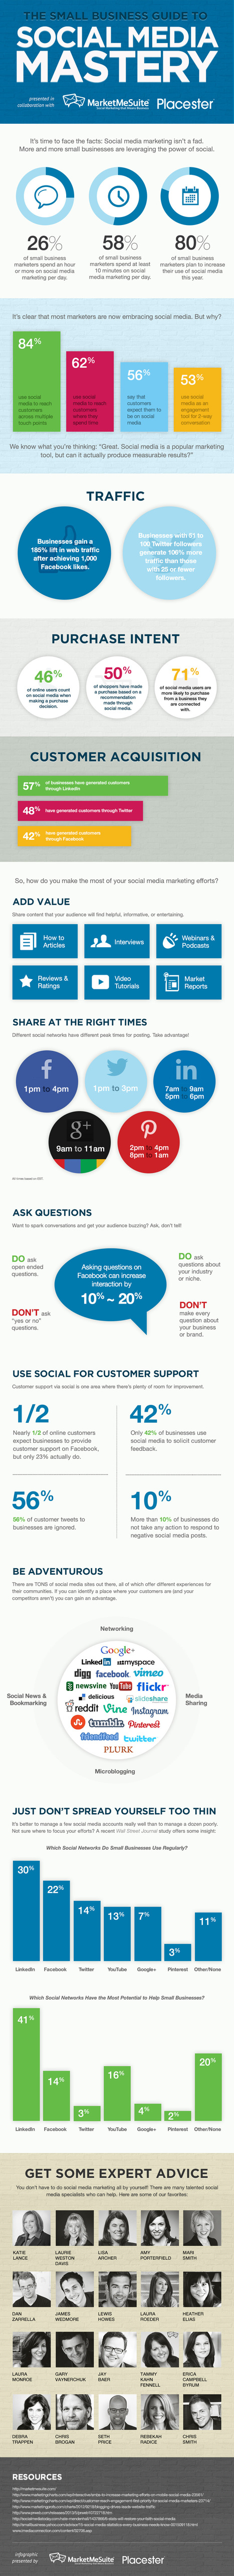 Why social media actually works for small business [infographic] | Social Media | Scoop.it